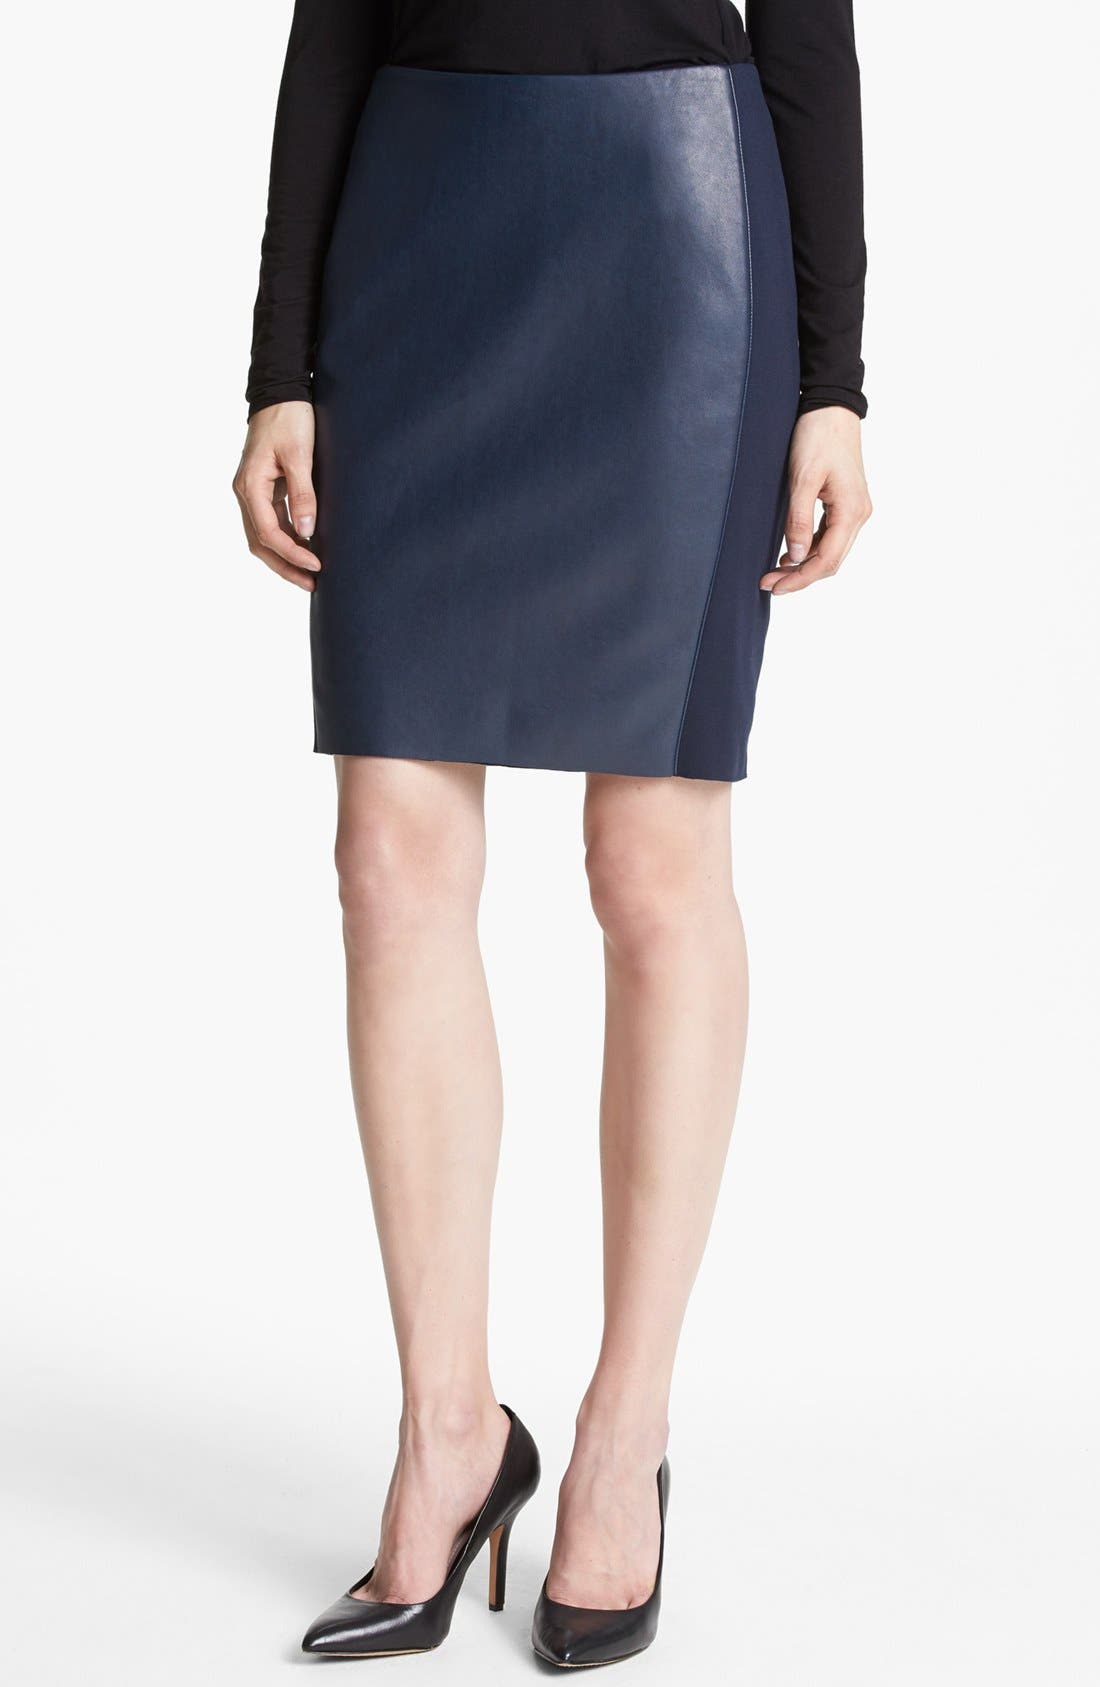 BAILEY 44, 'She Walk in Beauty' Faux Leather Pencil Skirt, Main thumbnail 1, color, 410